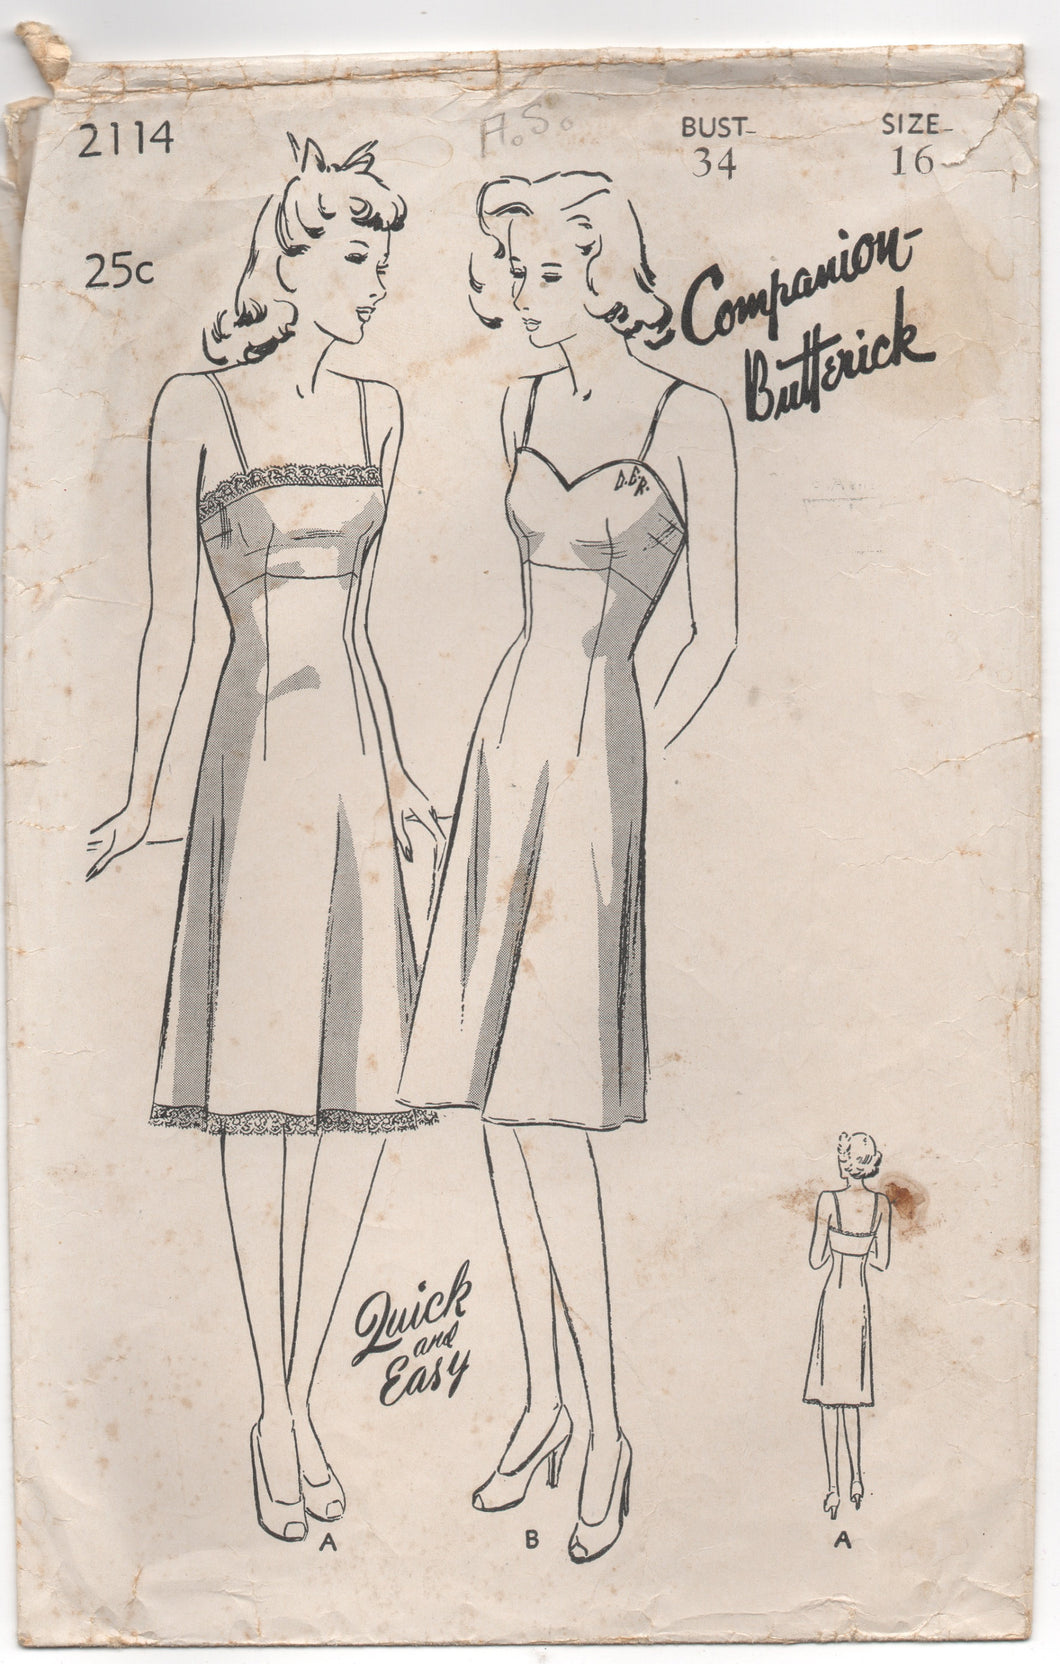 1940's Companion Butterick Slip and Camisole Pattern - Bust 34